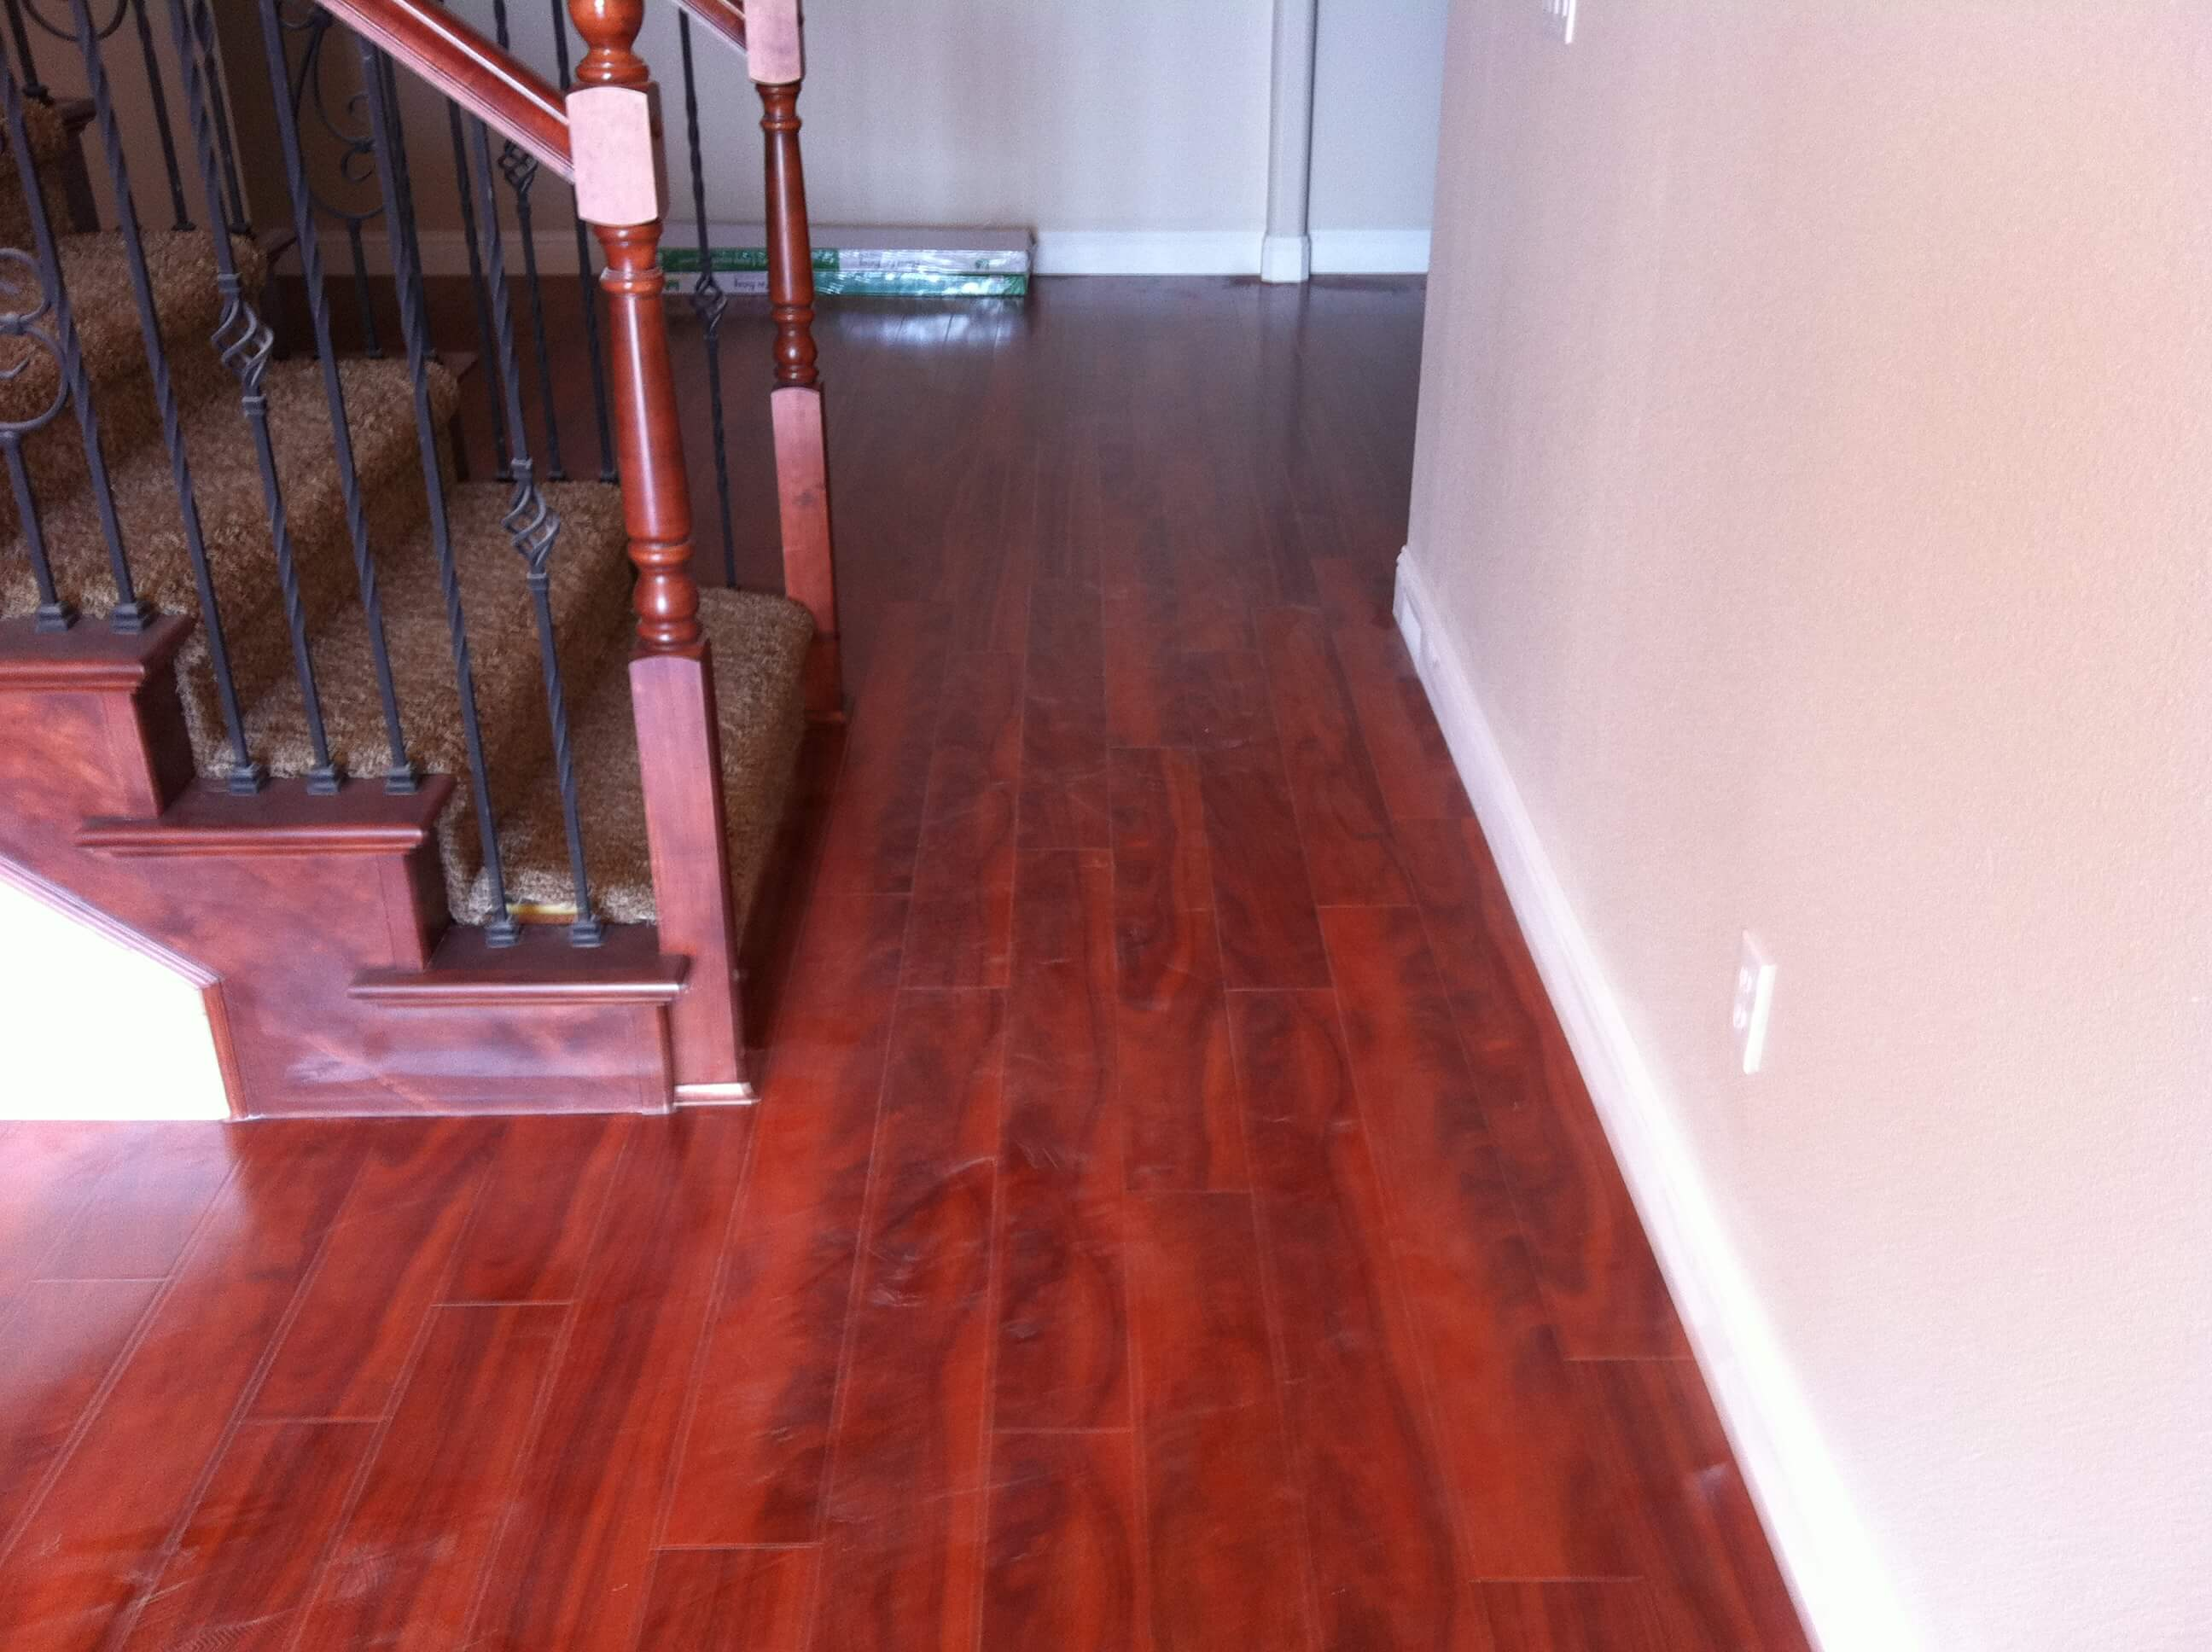 Engineered Hardwood Floor by the stairs